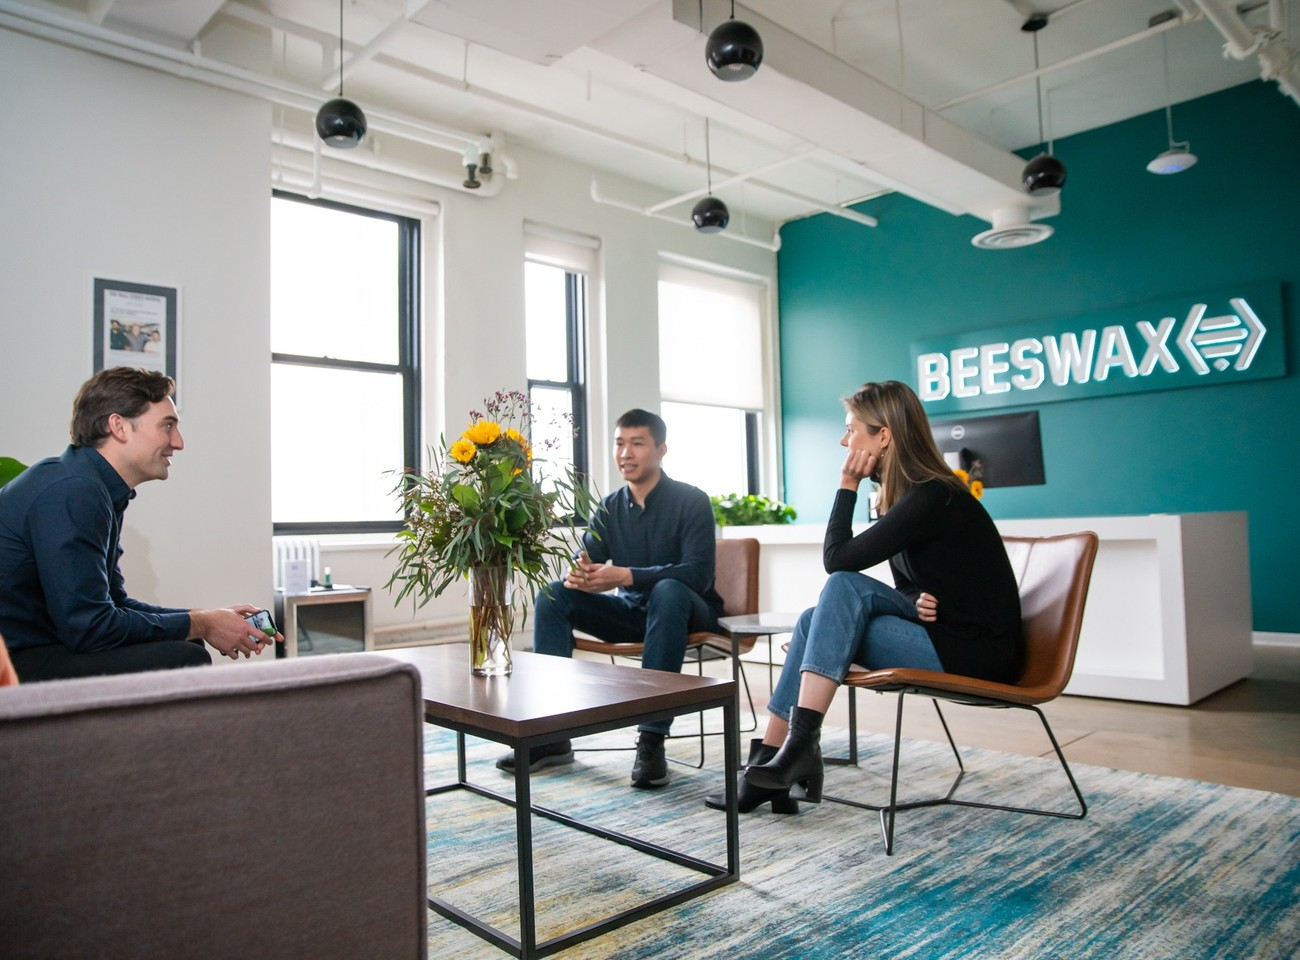 Beeswax Careers